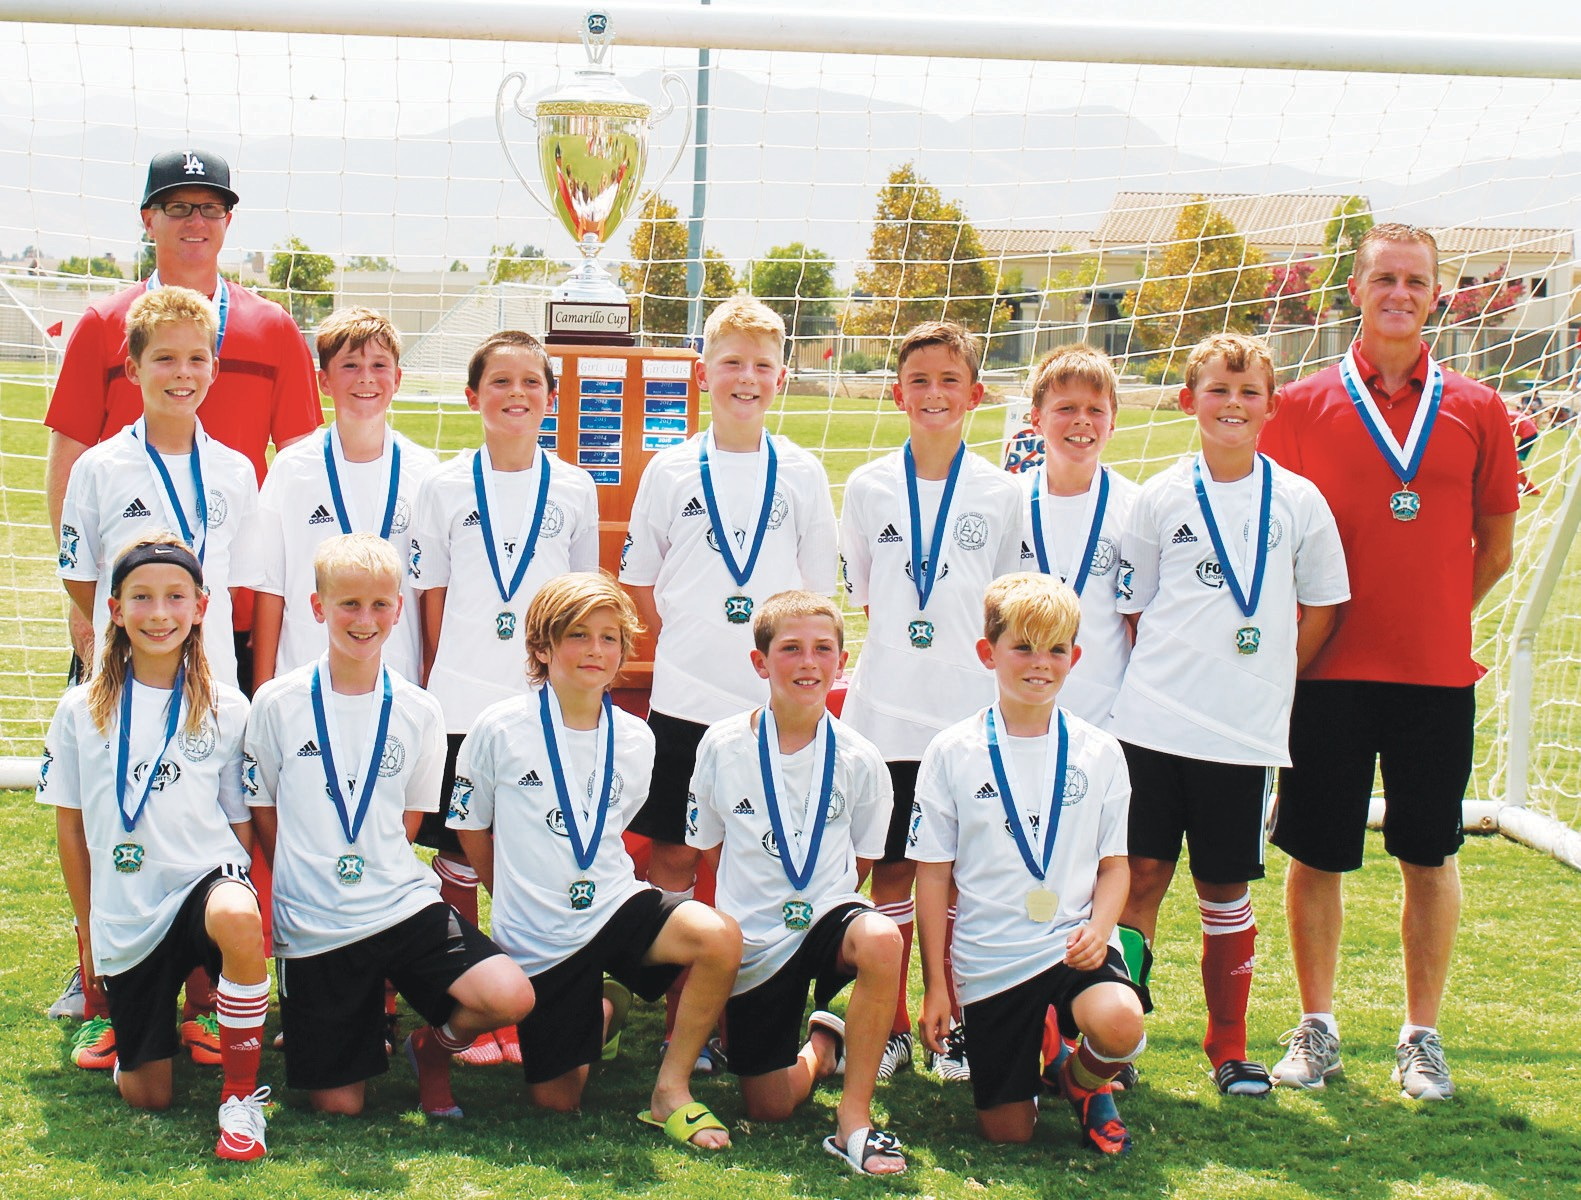 RED HOT—The Red Devils, the 2007 boy's Agoura AYSO Extra team, are the 2017 Camarillo Cup Champions for the second year in a row. Back row from left: Coach Brian Oliver, Cooper McAllister, Will Fox, Brady Dieffenbach, Braden Oliver, Jesse Leko, Josh Mensching, Garrett Andrews and coach Alan Howie. Front row kneeling: Cayde Rooke, Connor Howie, Shai Stabinsky, Caden Graves and Alex McAllister.